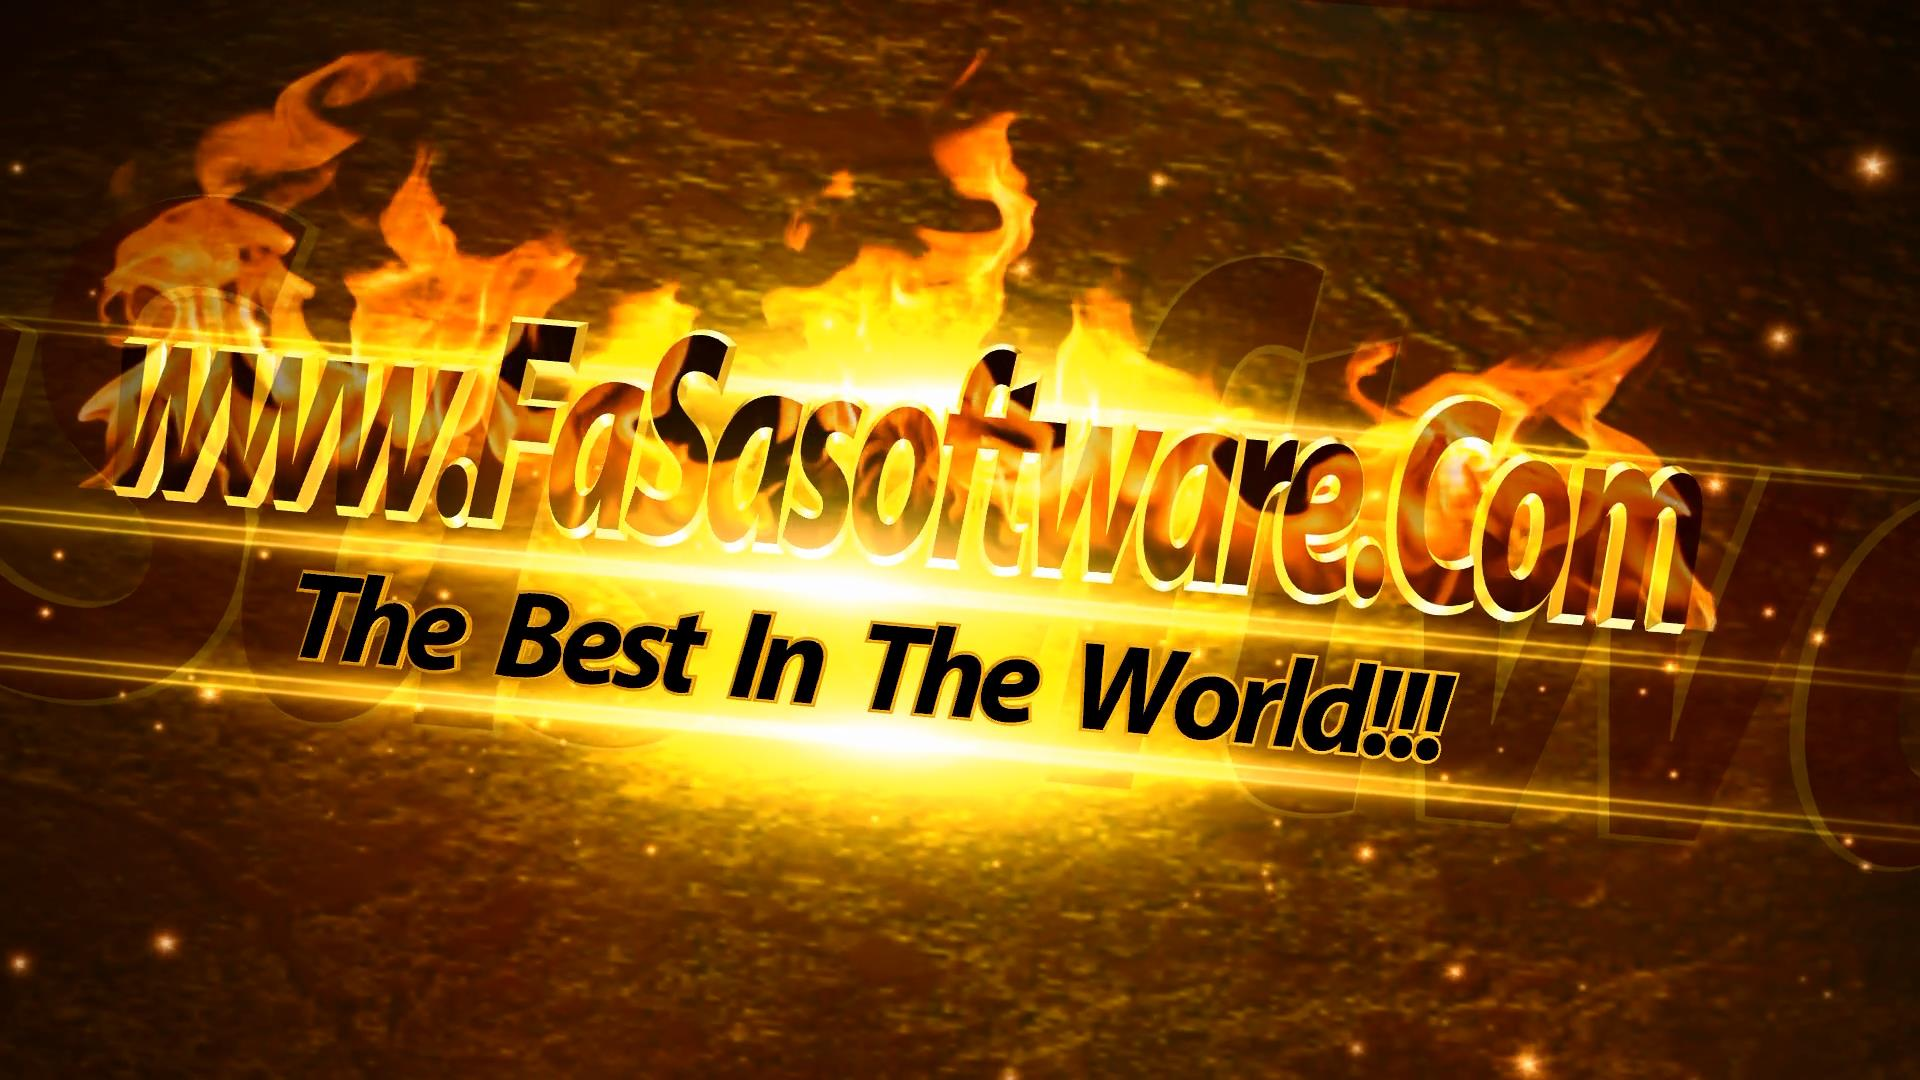 FaSasoftware The Best For You!